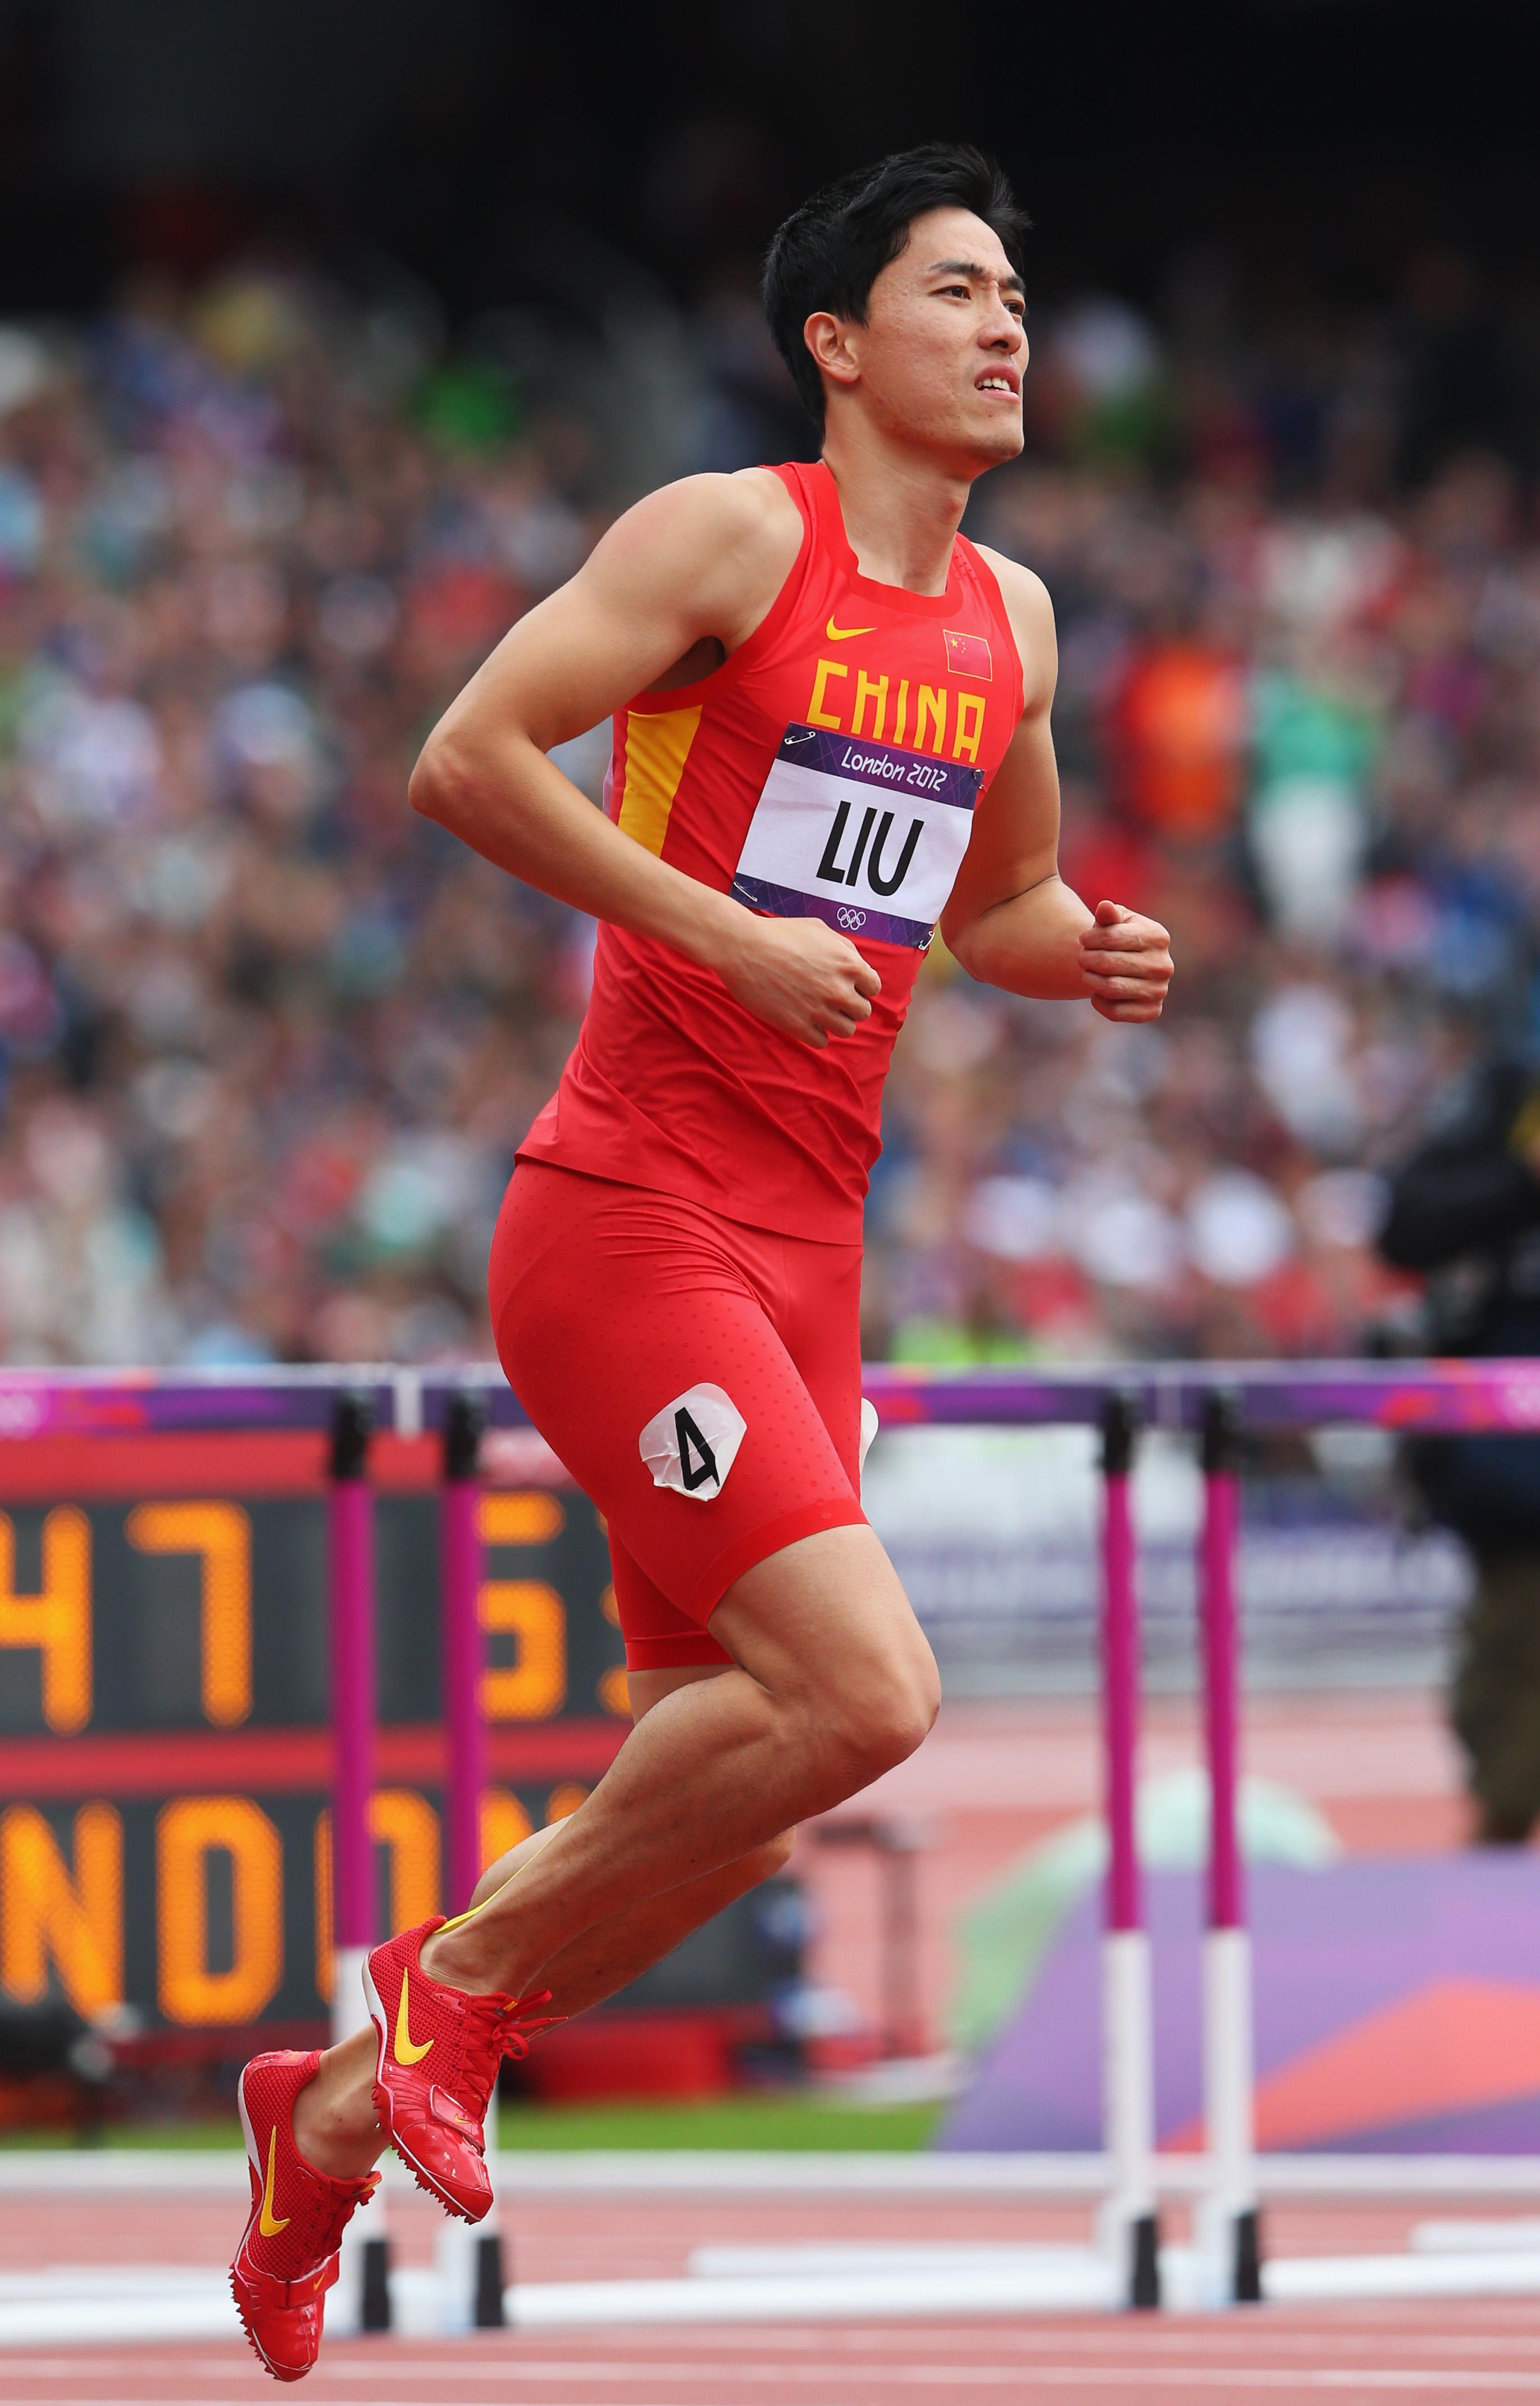 Xiang Liu of China hops on the track after getting injured in the Men's 110m Hurdles Round 1 Heats on Day 11 of the London 2012 Olympic Games at Olympic Stadium on August 7, 2012 in London, England. (Photo by Alexander Hassenstein/Getty Images)